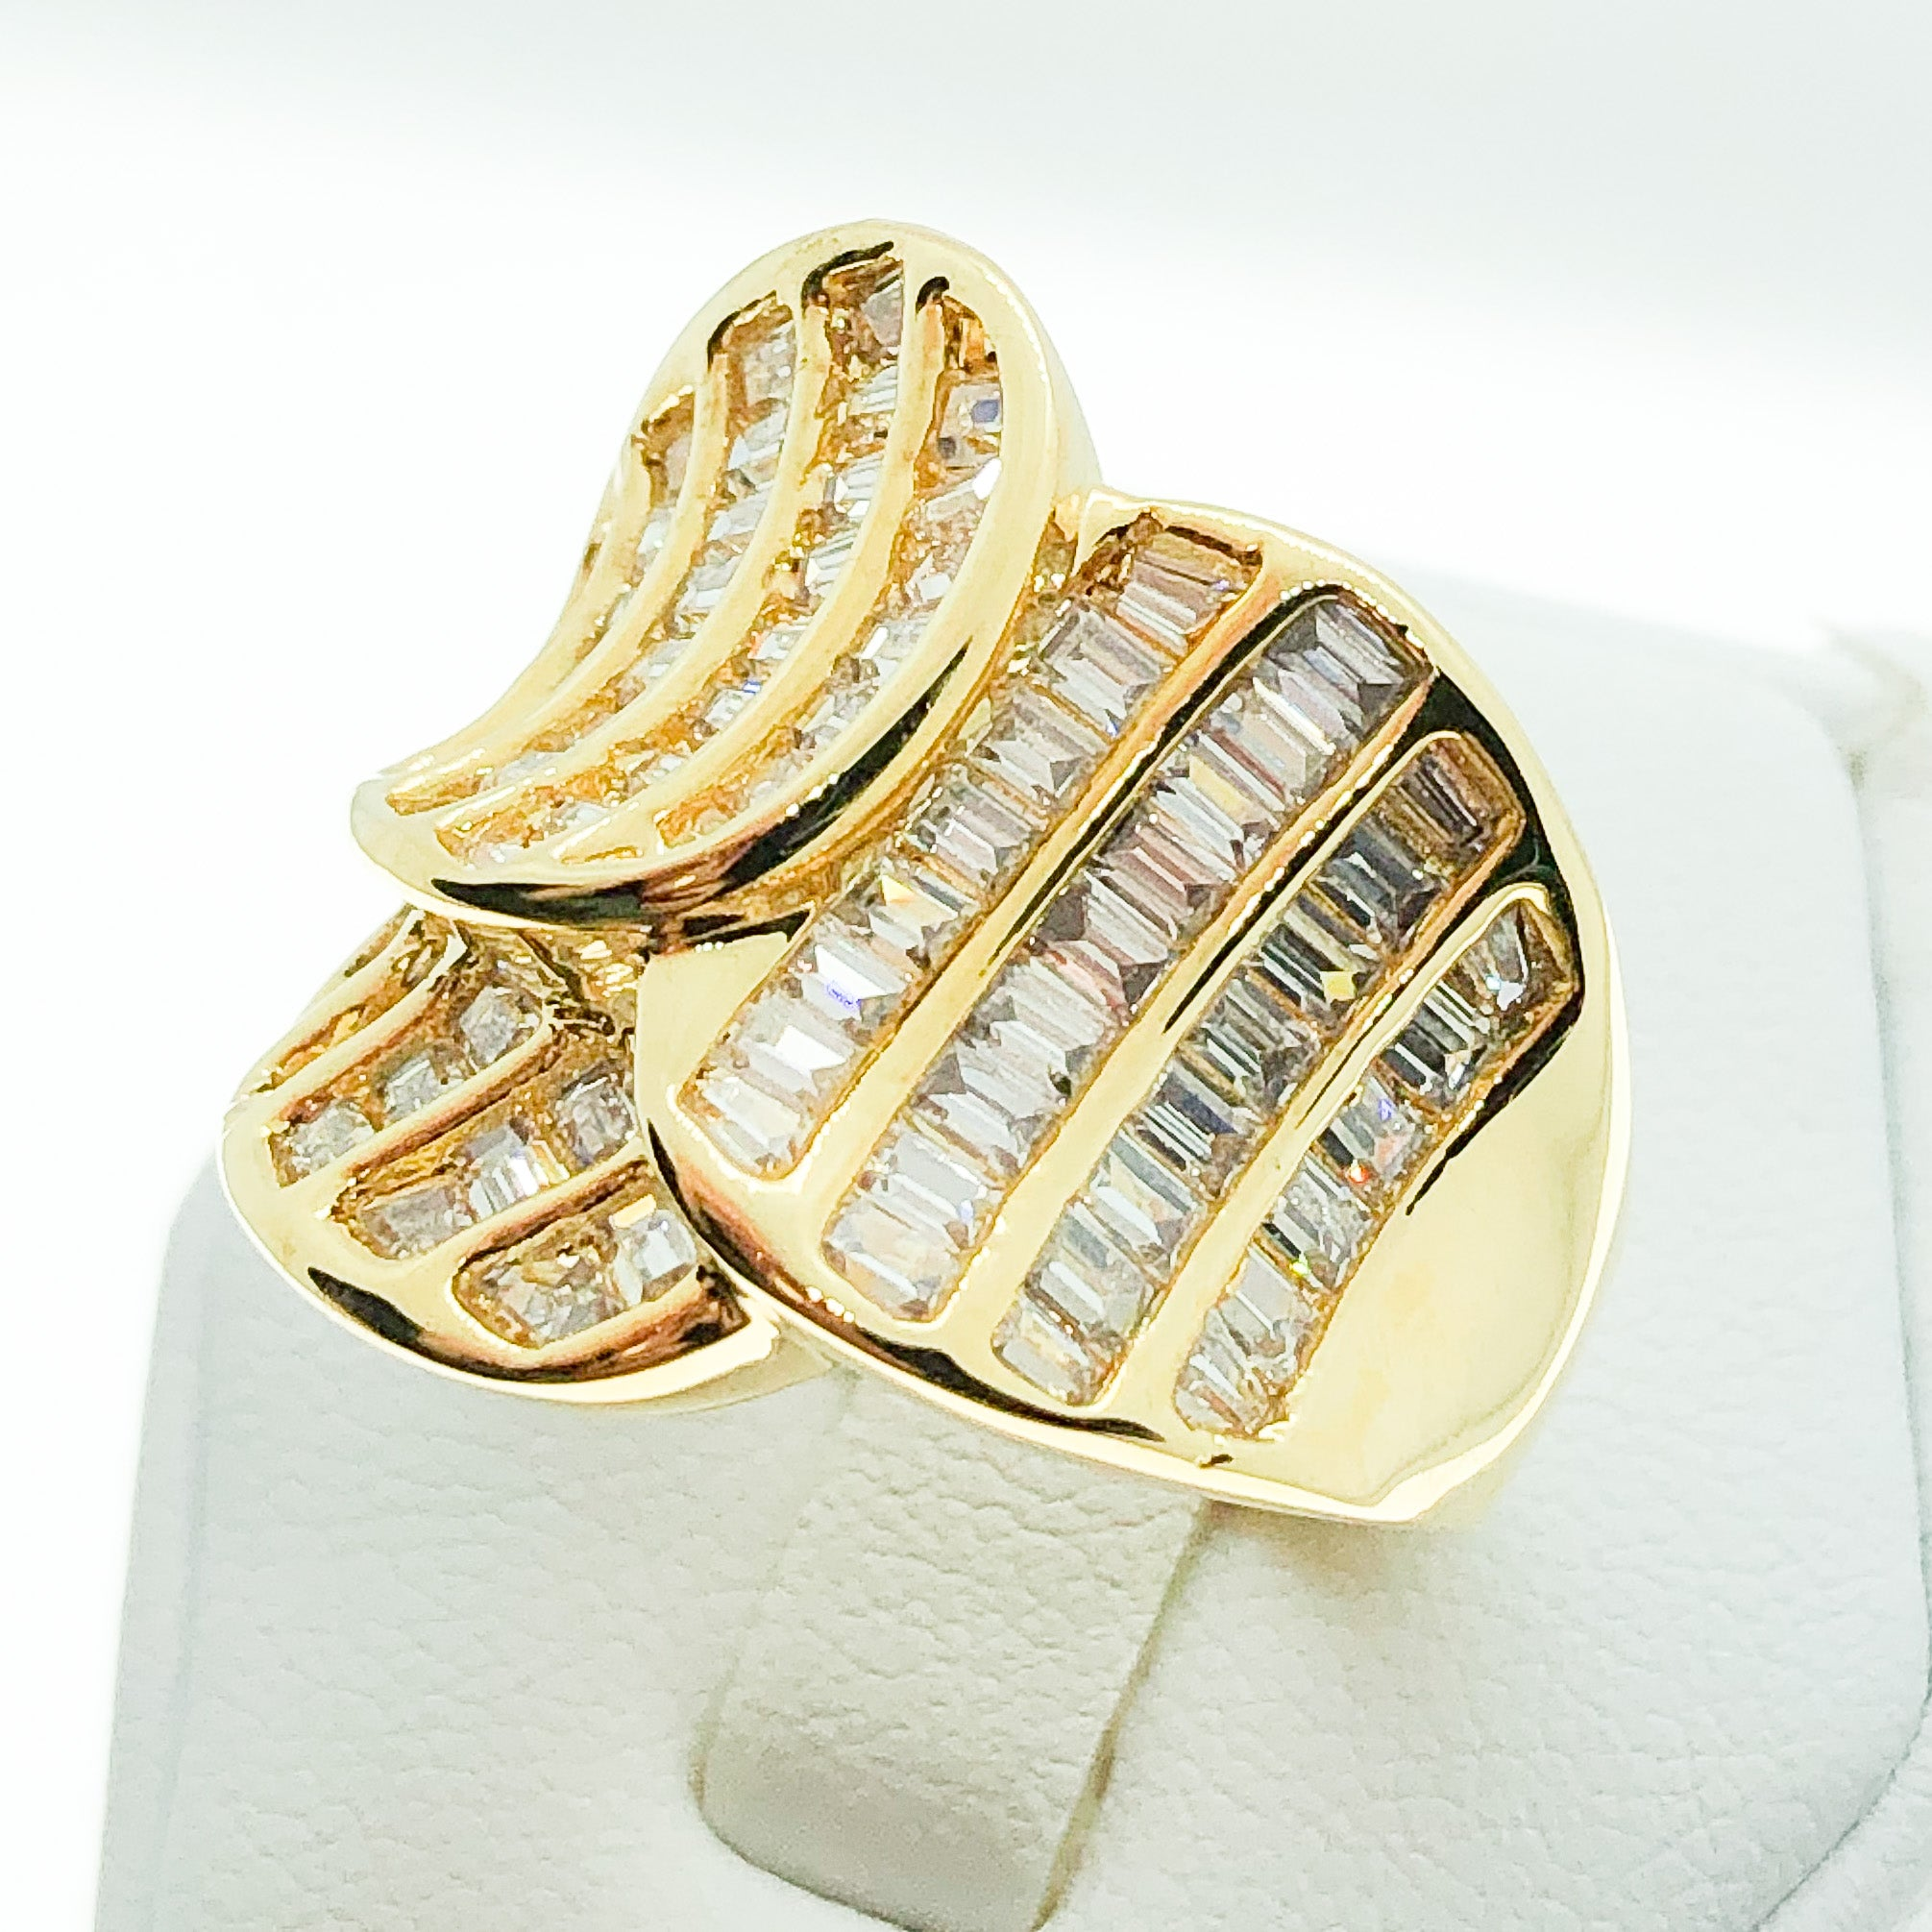 ID:R4808 Women 18K Yellow Gold GF Fashion Jewelry Good-looking Clear Baguette Gemstone Unique Design Ring Promise Gift